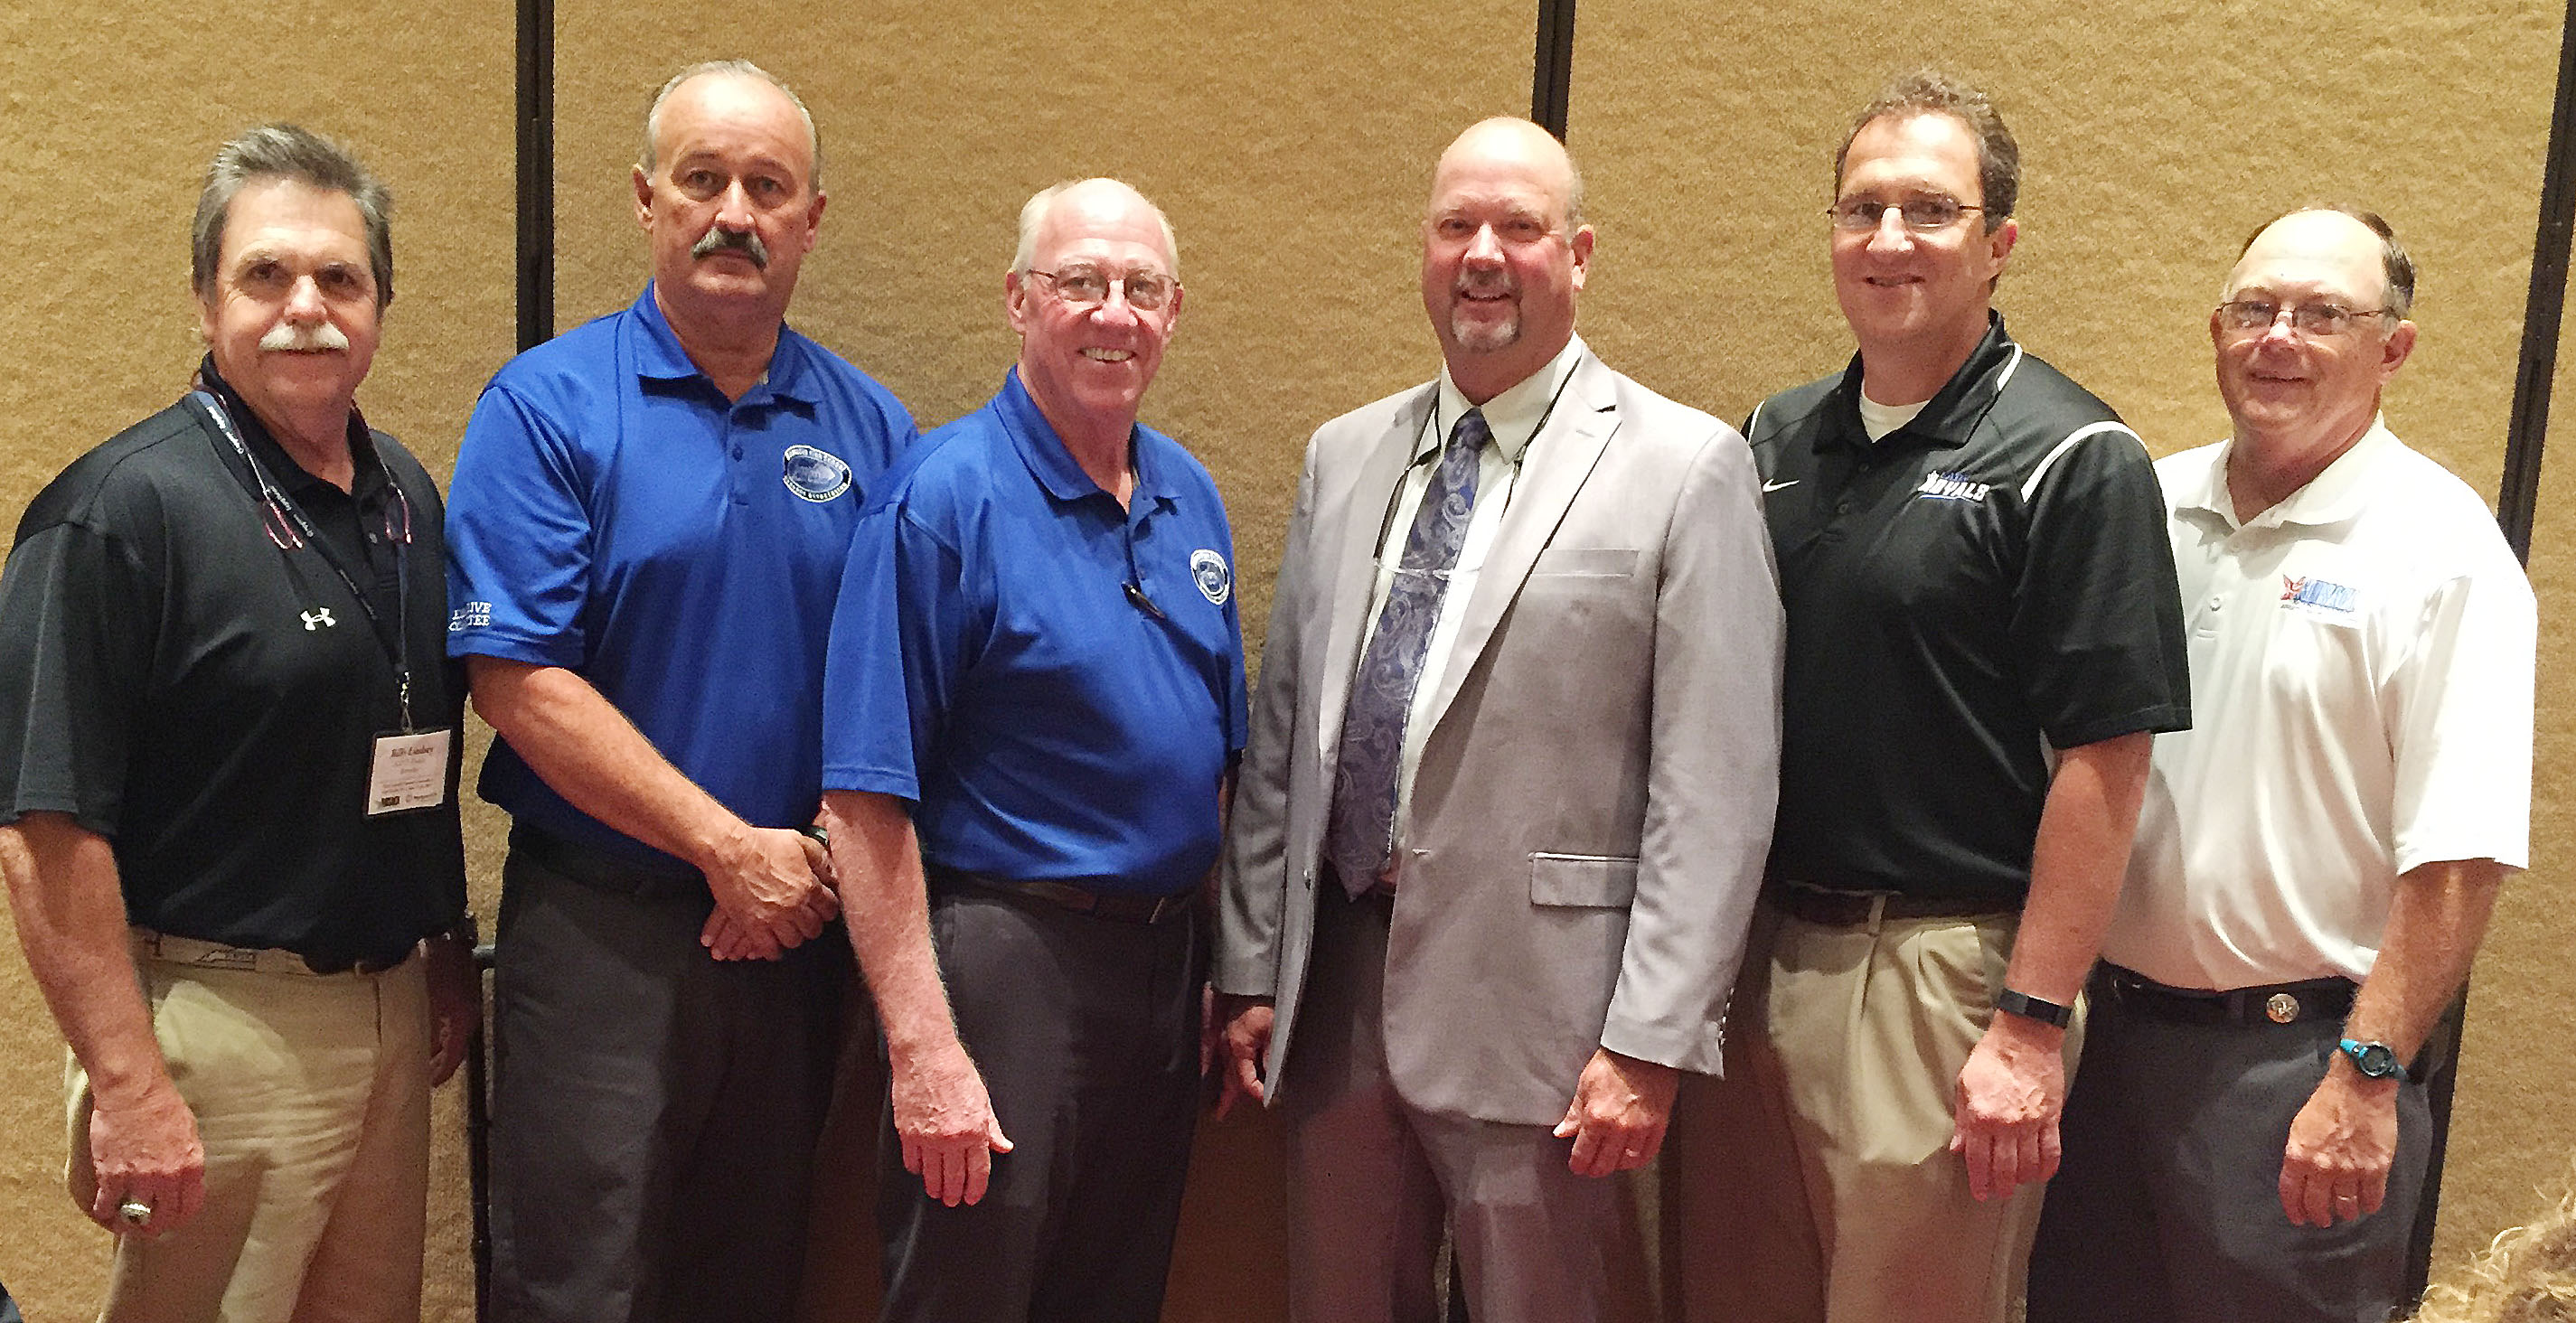 Campbellsville High School boys' head basketball coach and athletic director Tim Davis was inducted into the National High School Athletic Coaches Association Hall of Fame on Tuesday, June 20, for his longevity and service to high school athletics. Above, Davis, fourth from left, is pictured with the Kentucky High School Coaches Association executive committee members, who chose him for the honor.